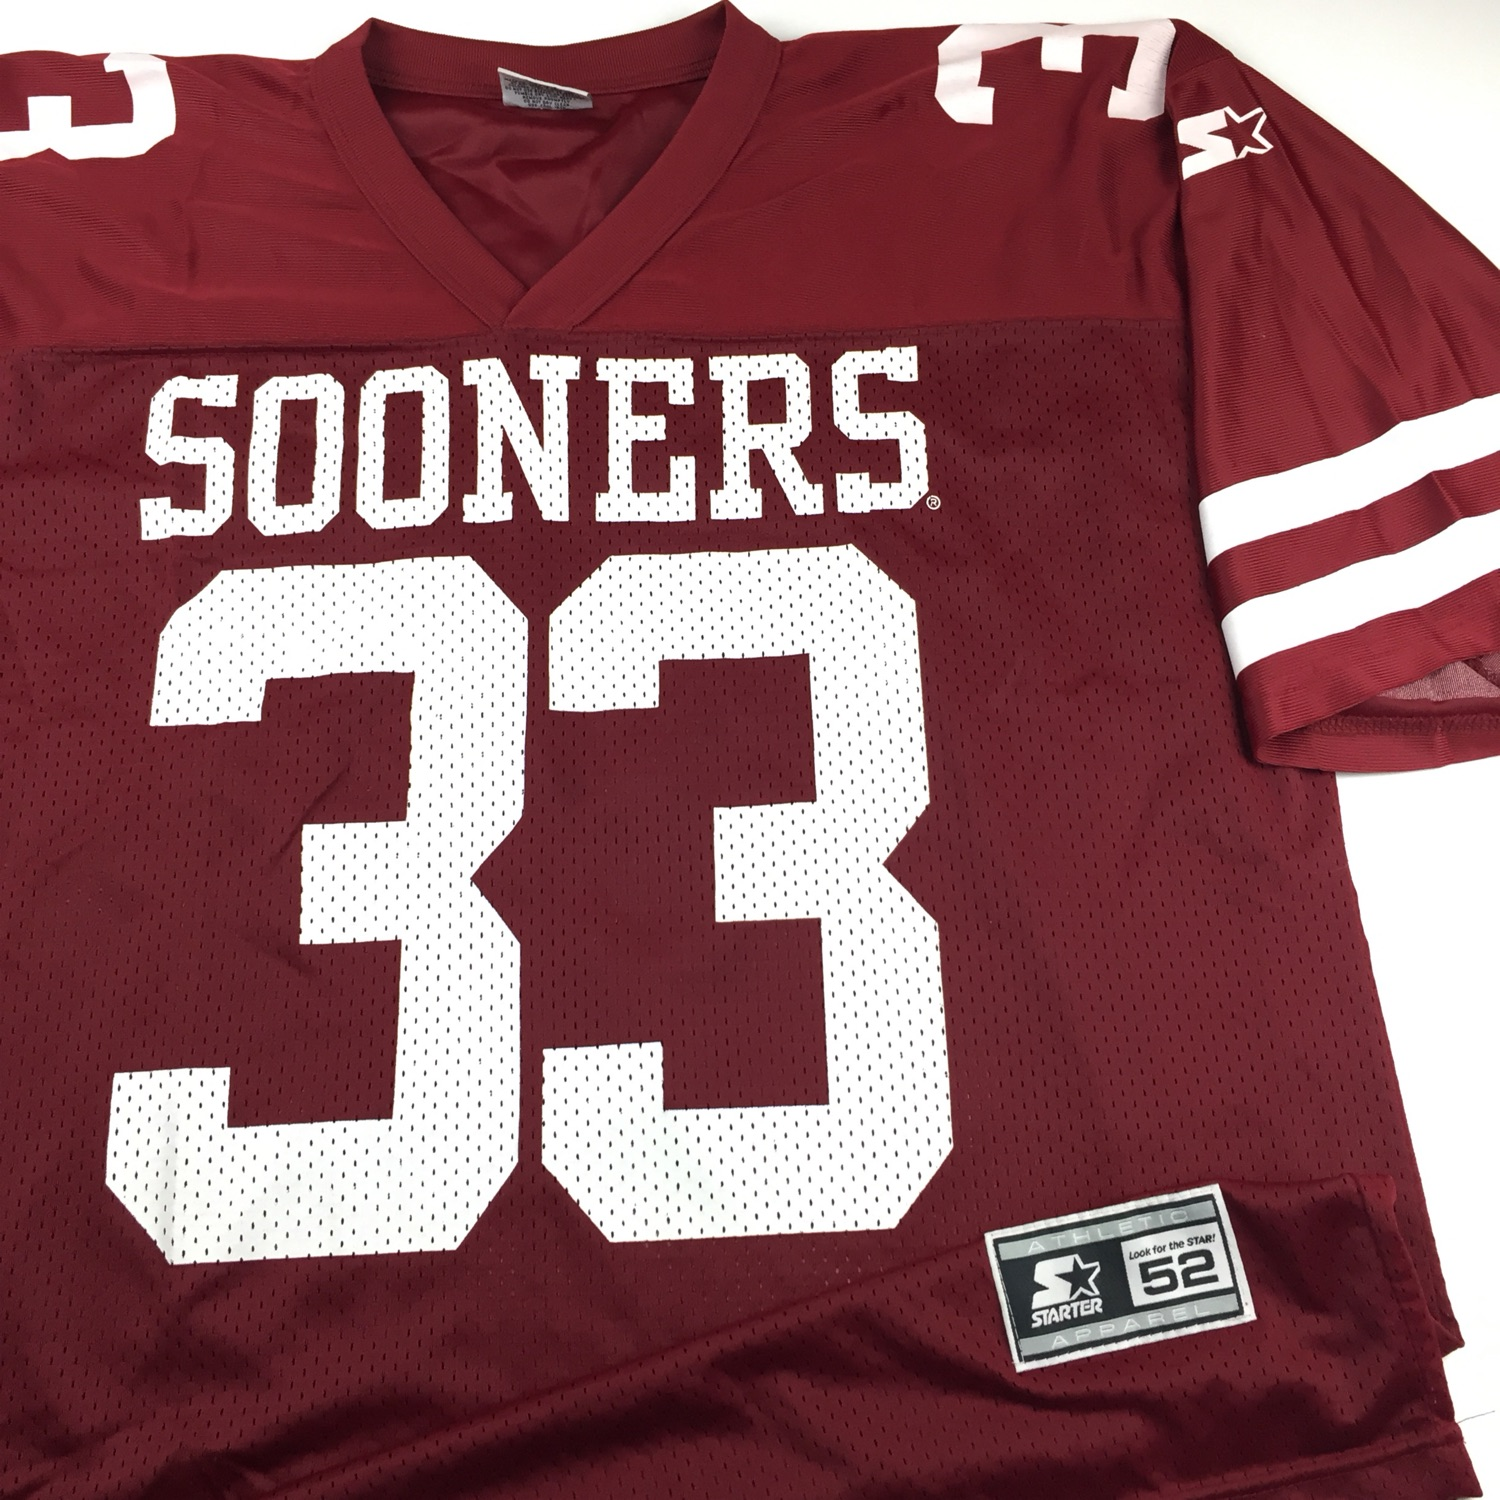 online store f527c f1f91 Vintage Started Oklahoma Sooners Football Jersey